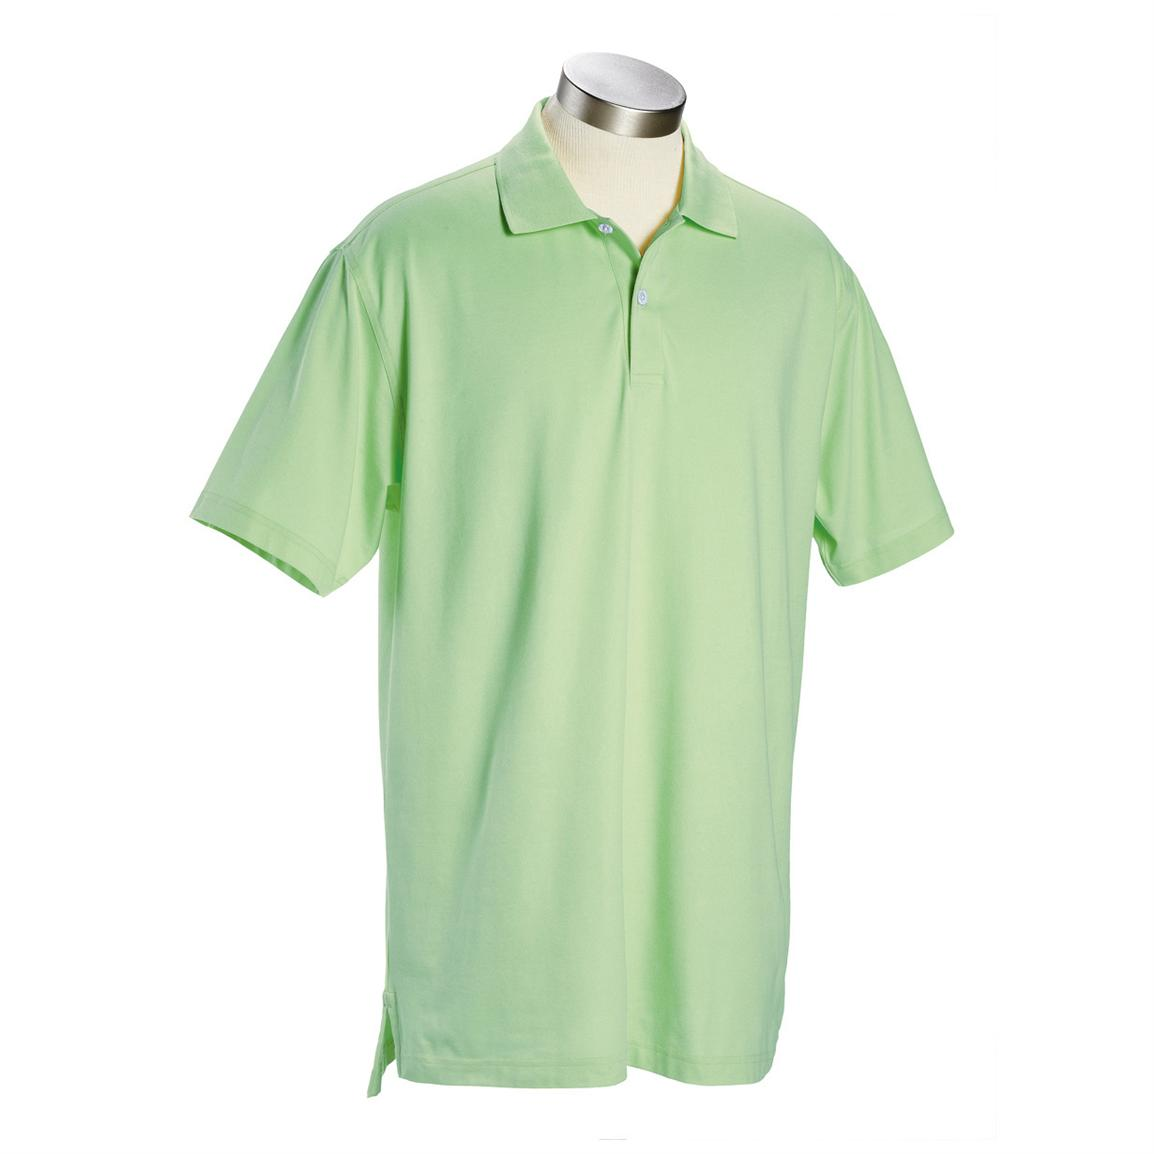 Men's Ashworth® Classic Solid Pique Polo, Bamboo